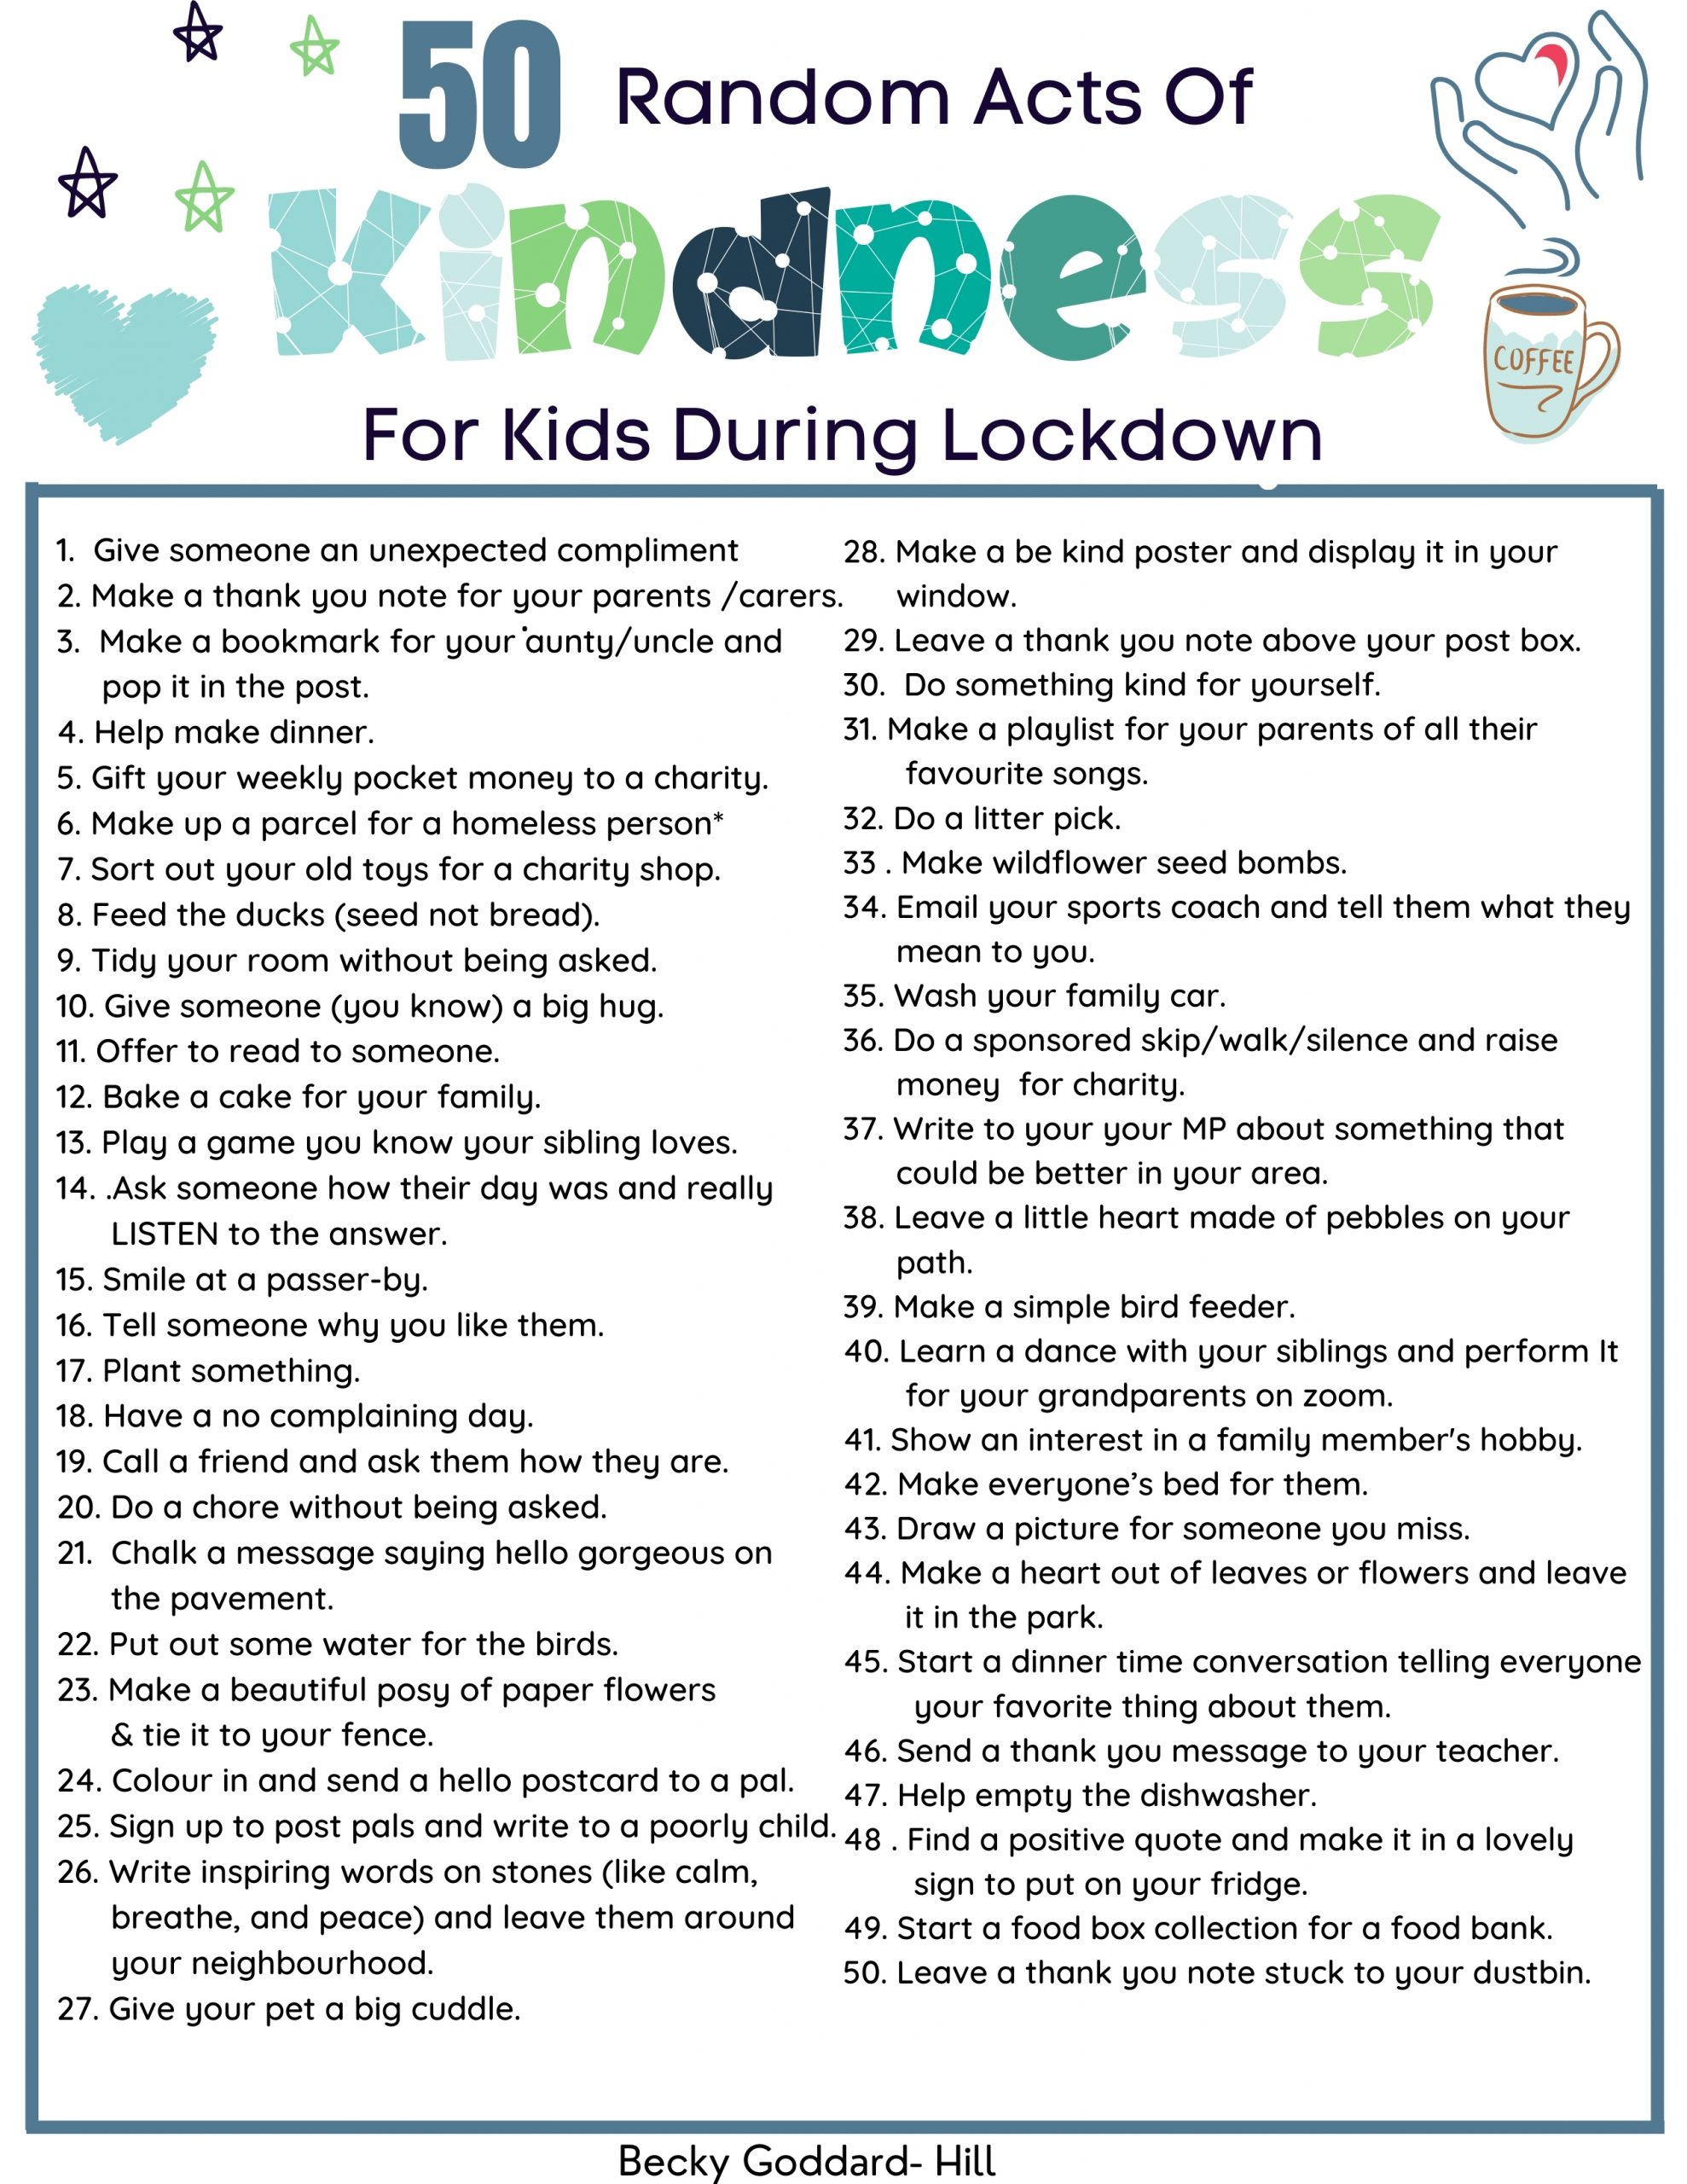 Random Acts of Kindness Kids Can Do in Lockdown